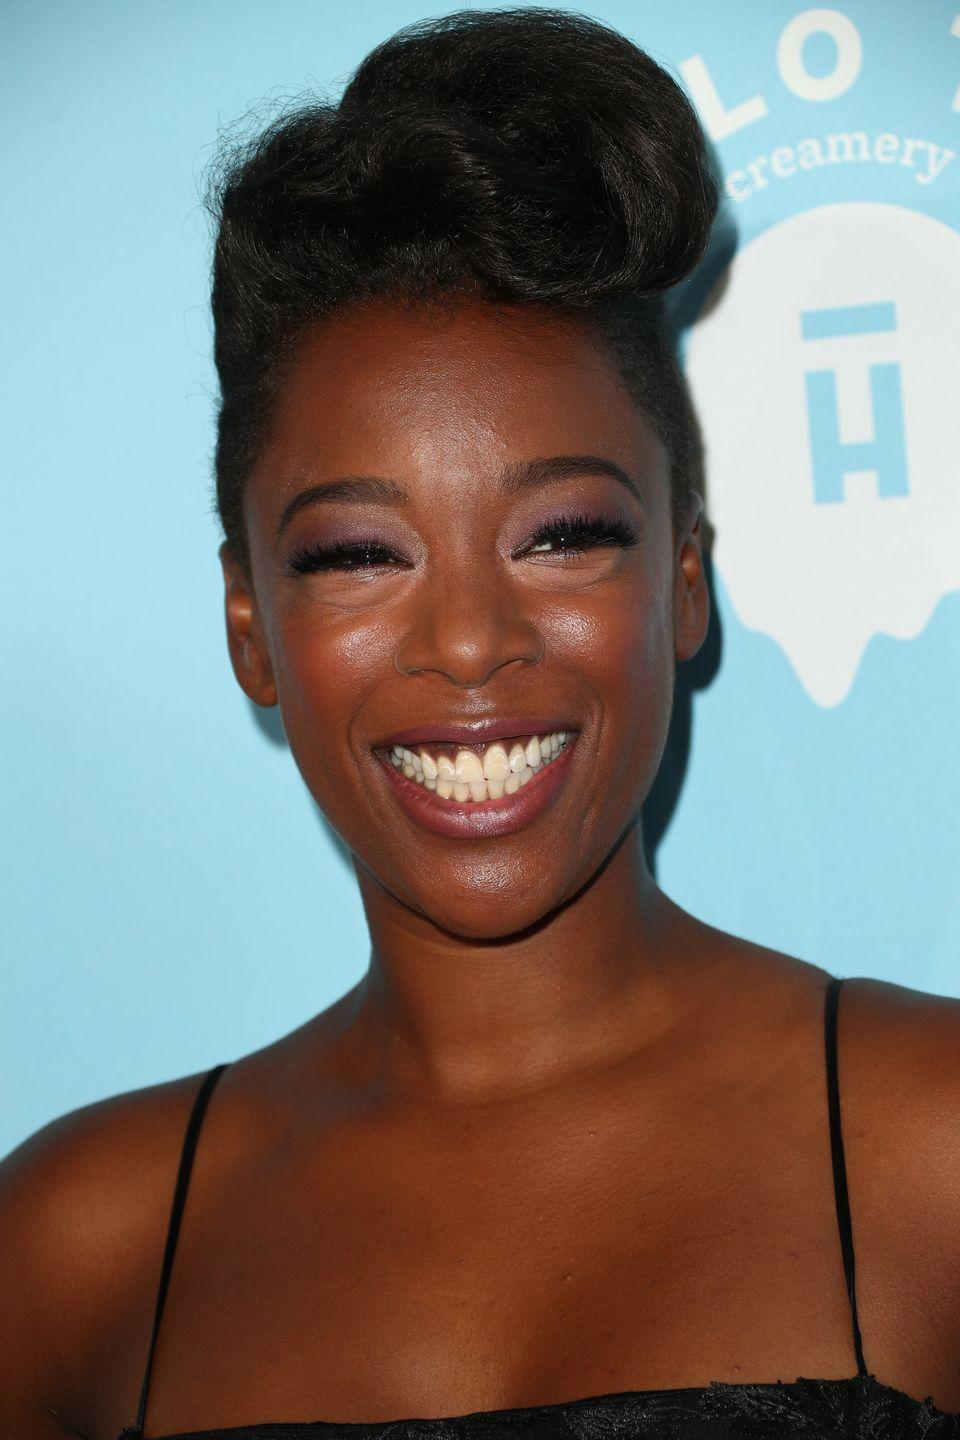 """<p><em>Orange Is The New Black</em> actress <strong>Samira Wiley</strong> is showstopping in a tapered updo. <a href=""""https://www.goodhousekeeping.com/beauty/hair/tips/a25691/how-to-blow-dry-hair/"""" rel=""""nofollow noopener"""" target=""""_blank"""" data-ylk=""""slk:Blow out"""" class=""""link rapid-noclick-resp"""">Blow out</a> your <a href=""""https://www.goodhousekeeping.com/beauty-products/g34894772/best-flat-irons-for-natural-hair/"""" rel=""""nofollow noopener"""" target=""""_blank"""" data-ylk=""""slk:natural hair"""" class=""""link rapid-noclick-resp"""">natural hair</a> and twist it up to create <a href=""""https://www.goodhousekeeping.com/beauty/hair/tips/g1800/celebrity-hairstyles-updo/"""" rel=""""nofollow noopener"""" target=""""_blank"""" data-ylk=""""slk:a beautiful updo"""" class=""""link rapid-noclick-resp"""">a beautiful updo</a> that allows the focus to be on your face. </p>"""